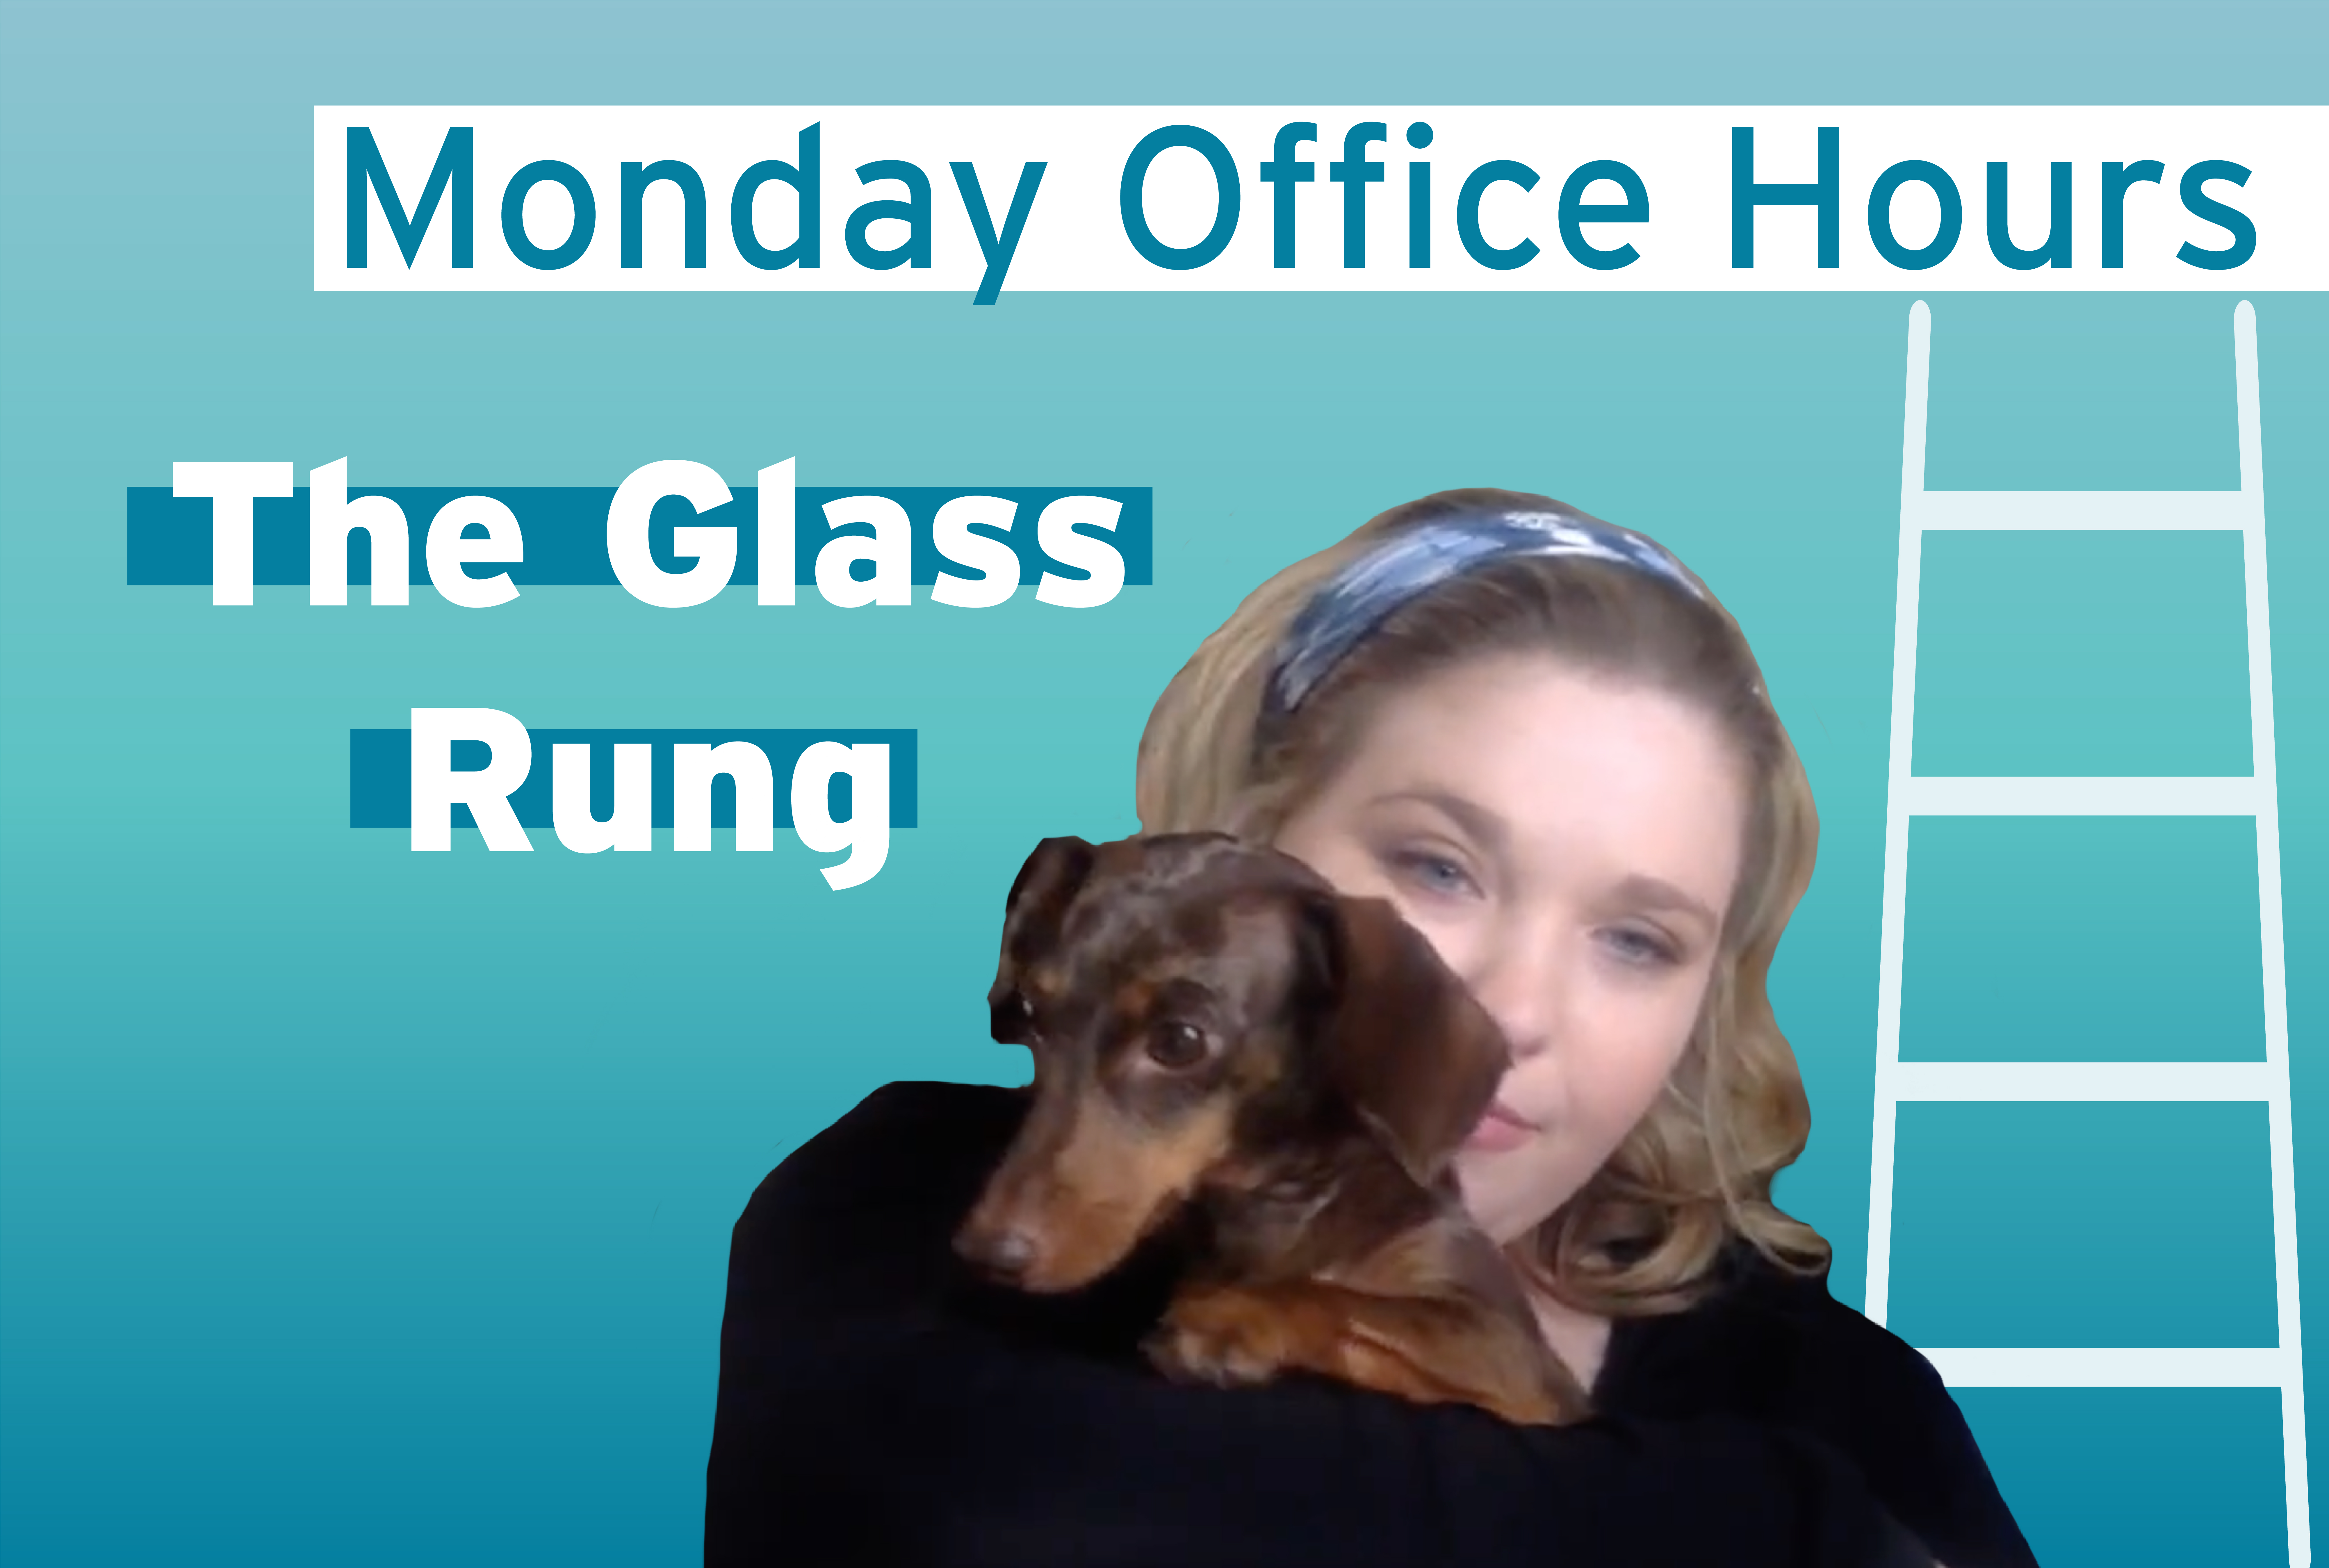 WATCH: Monday Office Hours, Episode 5: The Glass Rung